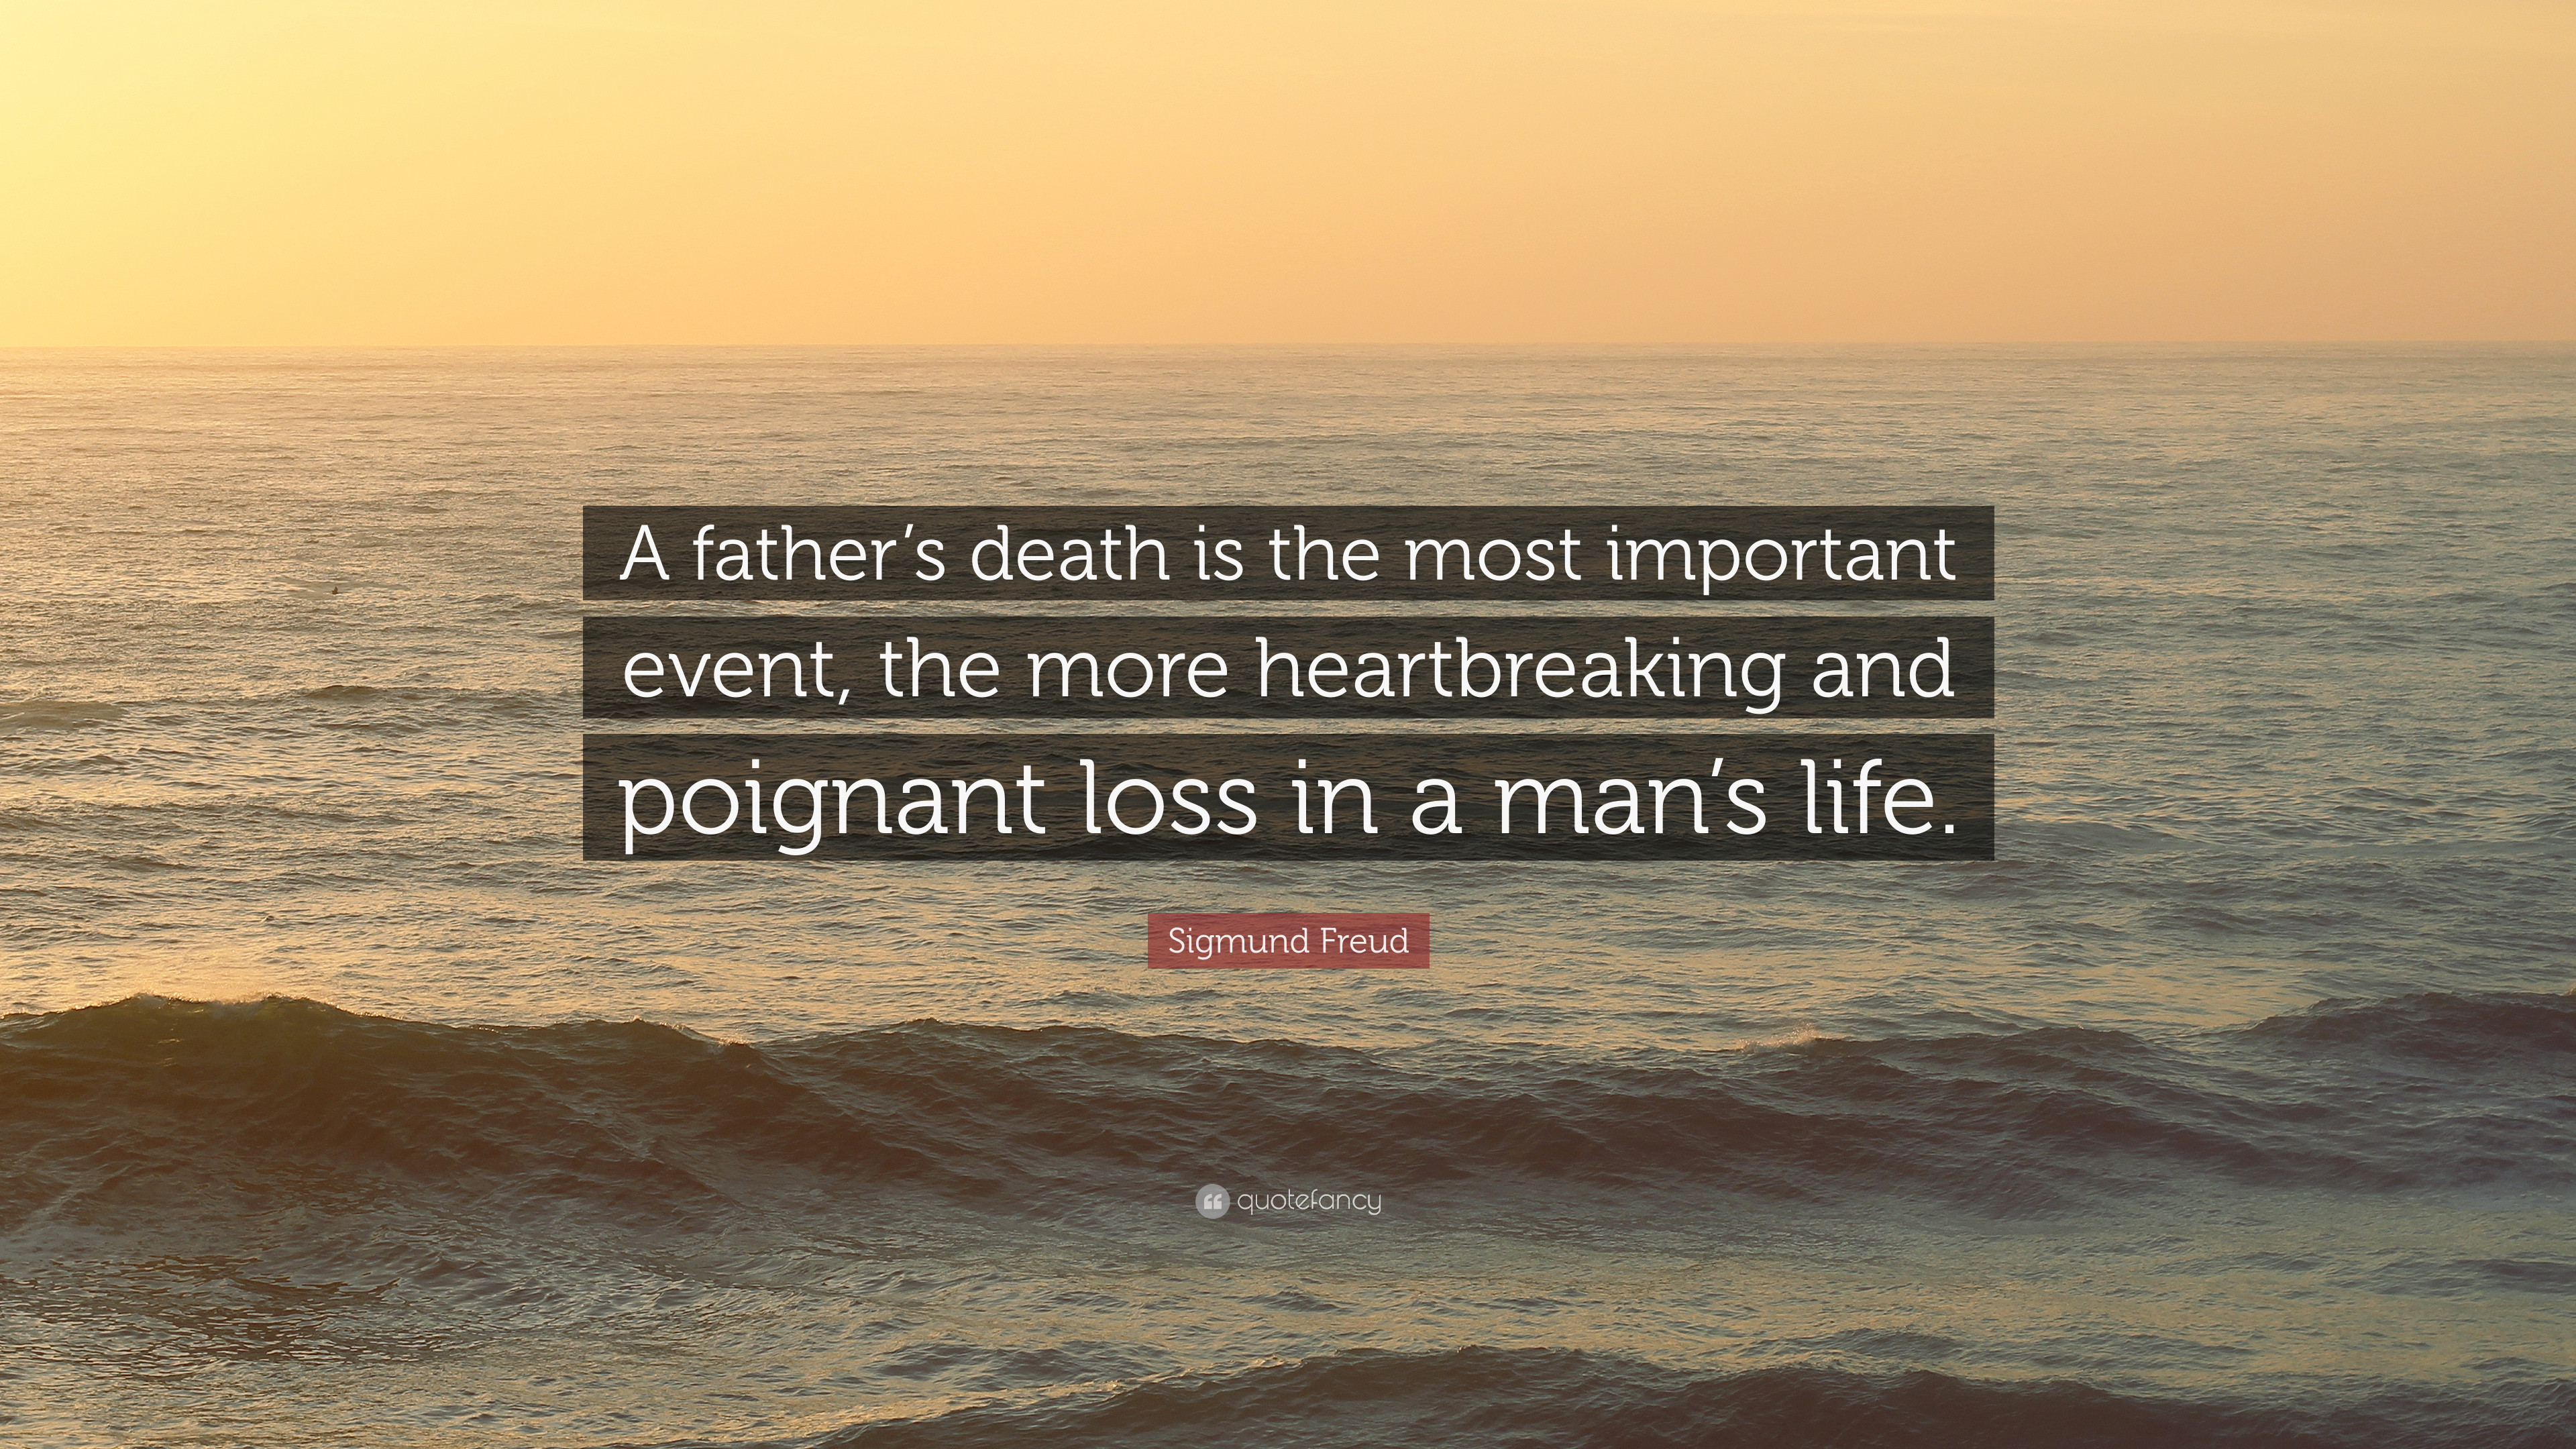 sigmund freud quote a father s death is the most important event